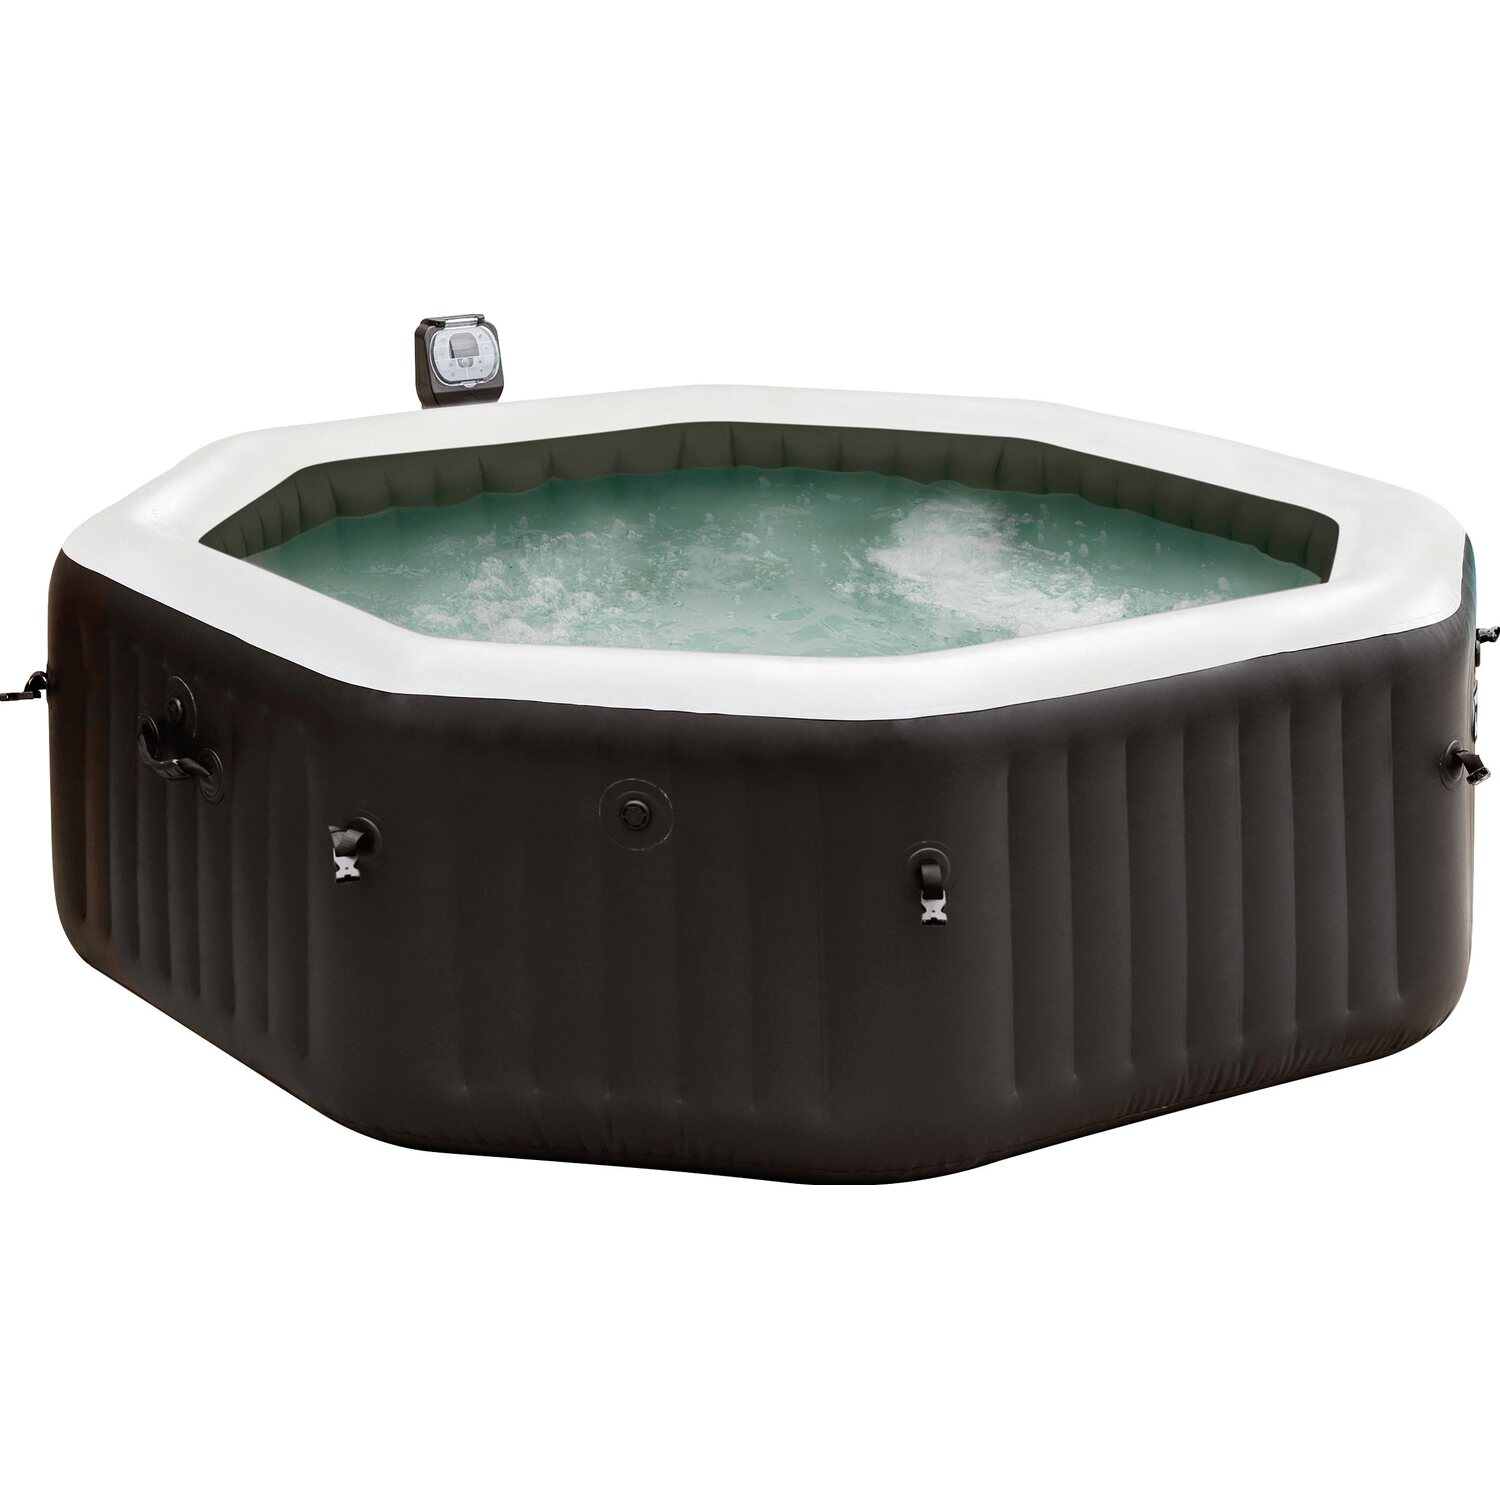 Intex whirlpool pure spa octagon bubble jet f r 6 personen for Obi intex pool